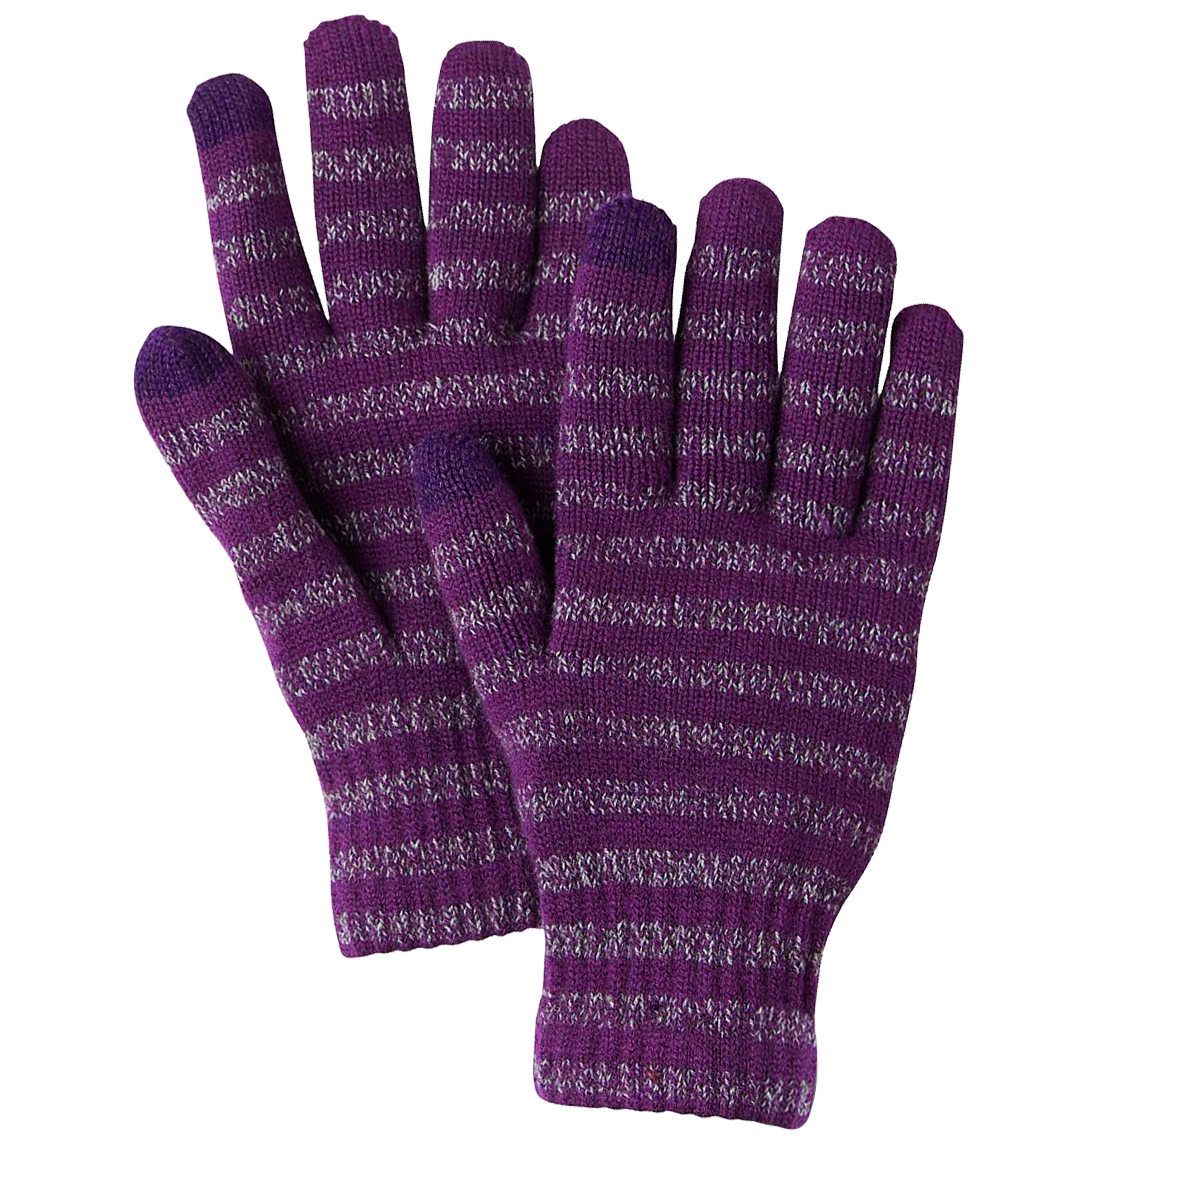 Merino Wool Touch Screen Glove/MWG-004-P